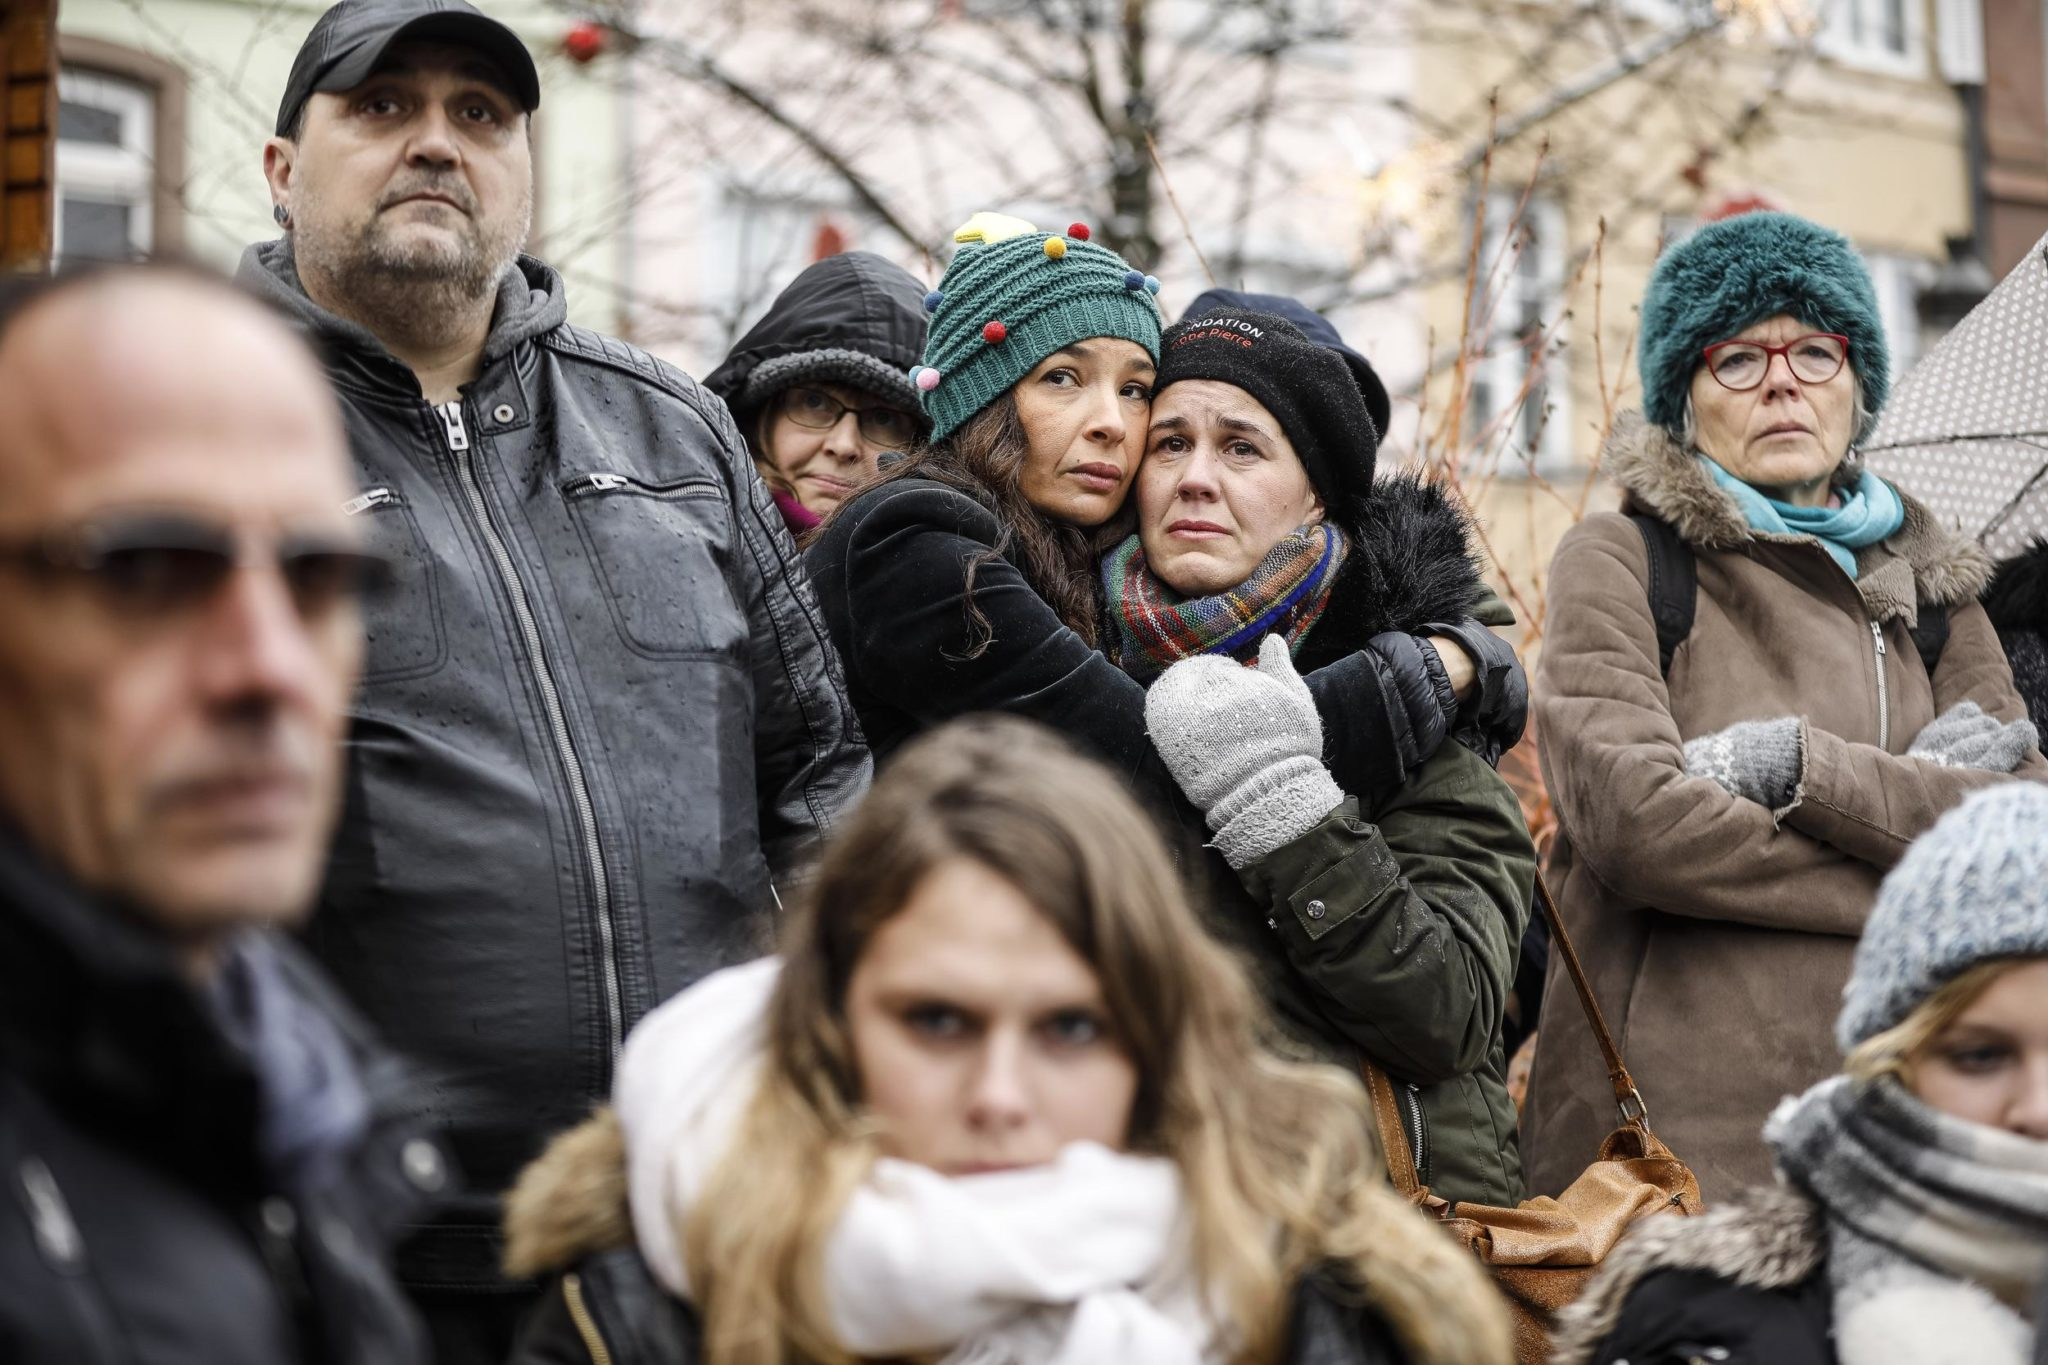 French City Honors Victims Of Christmas Market Attack